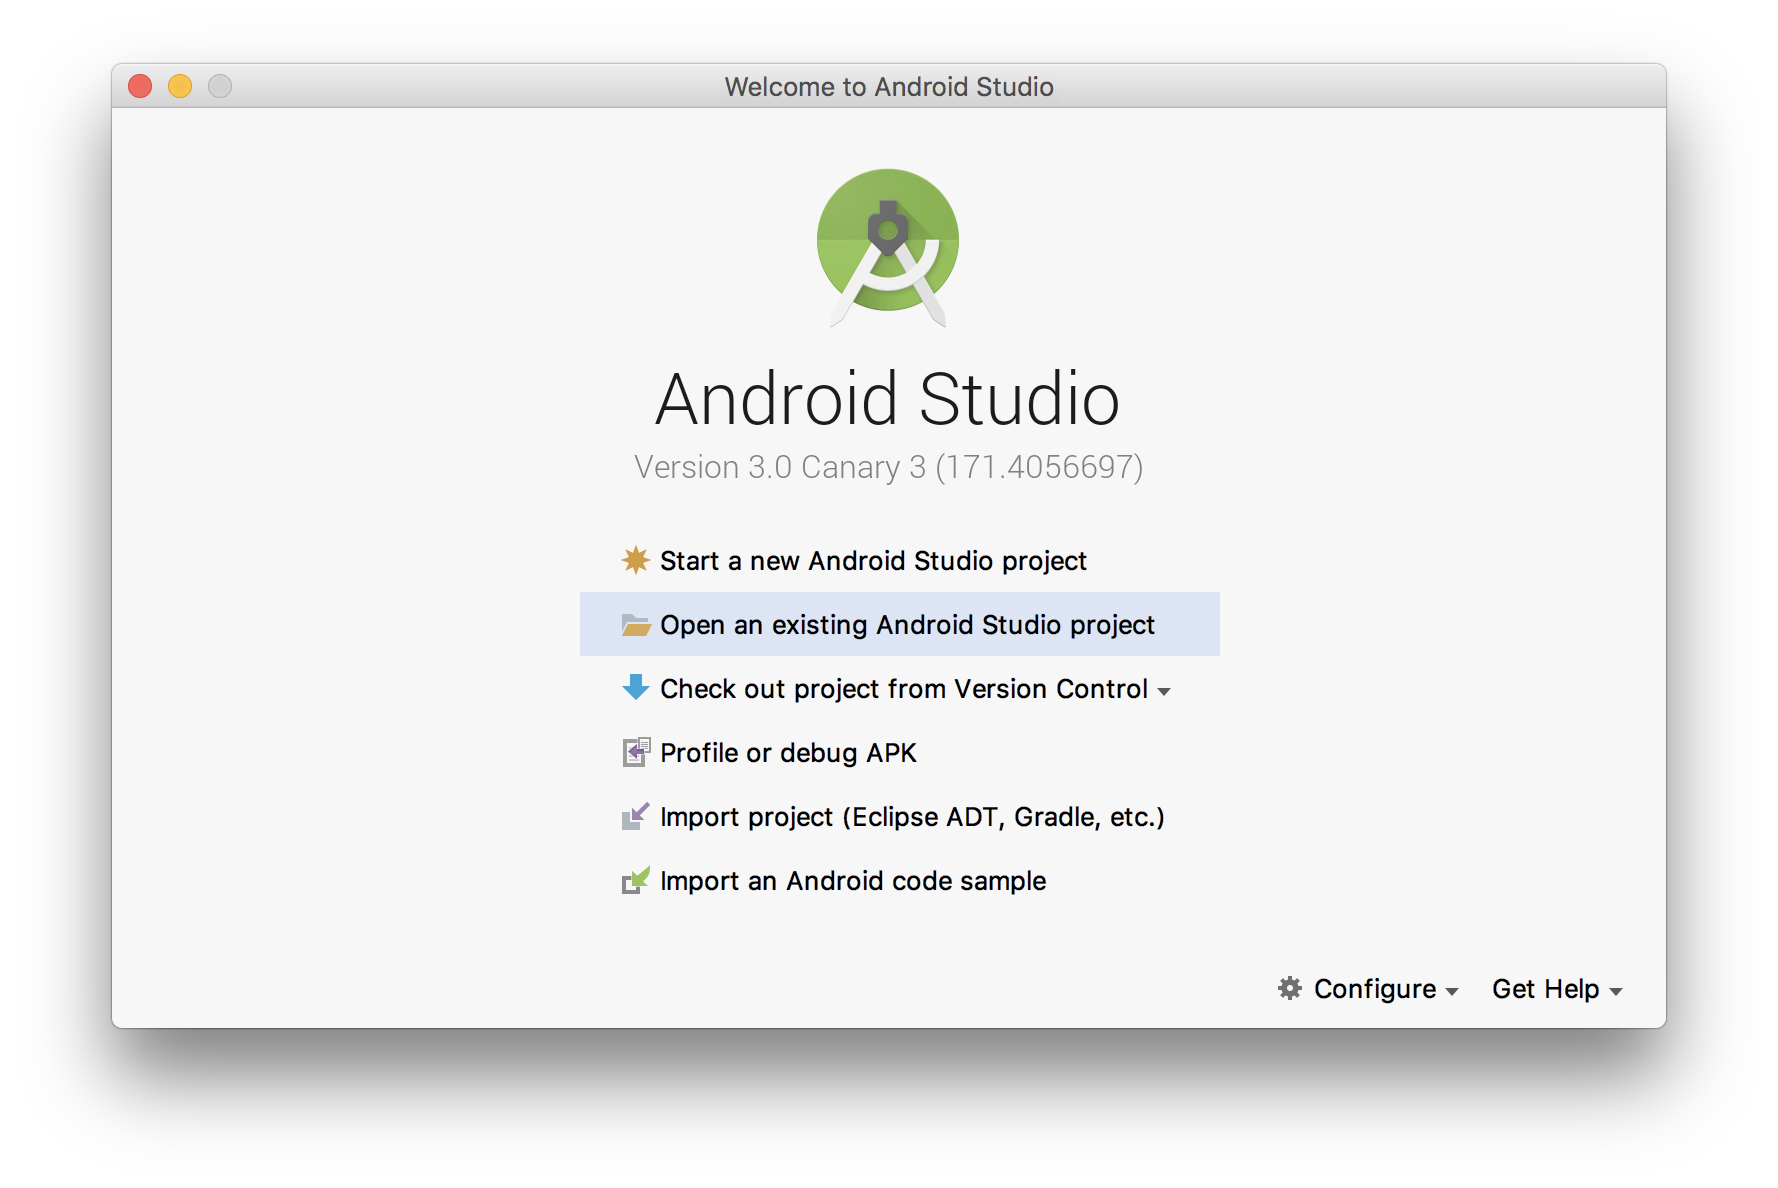 Open an existing Android Studio project